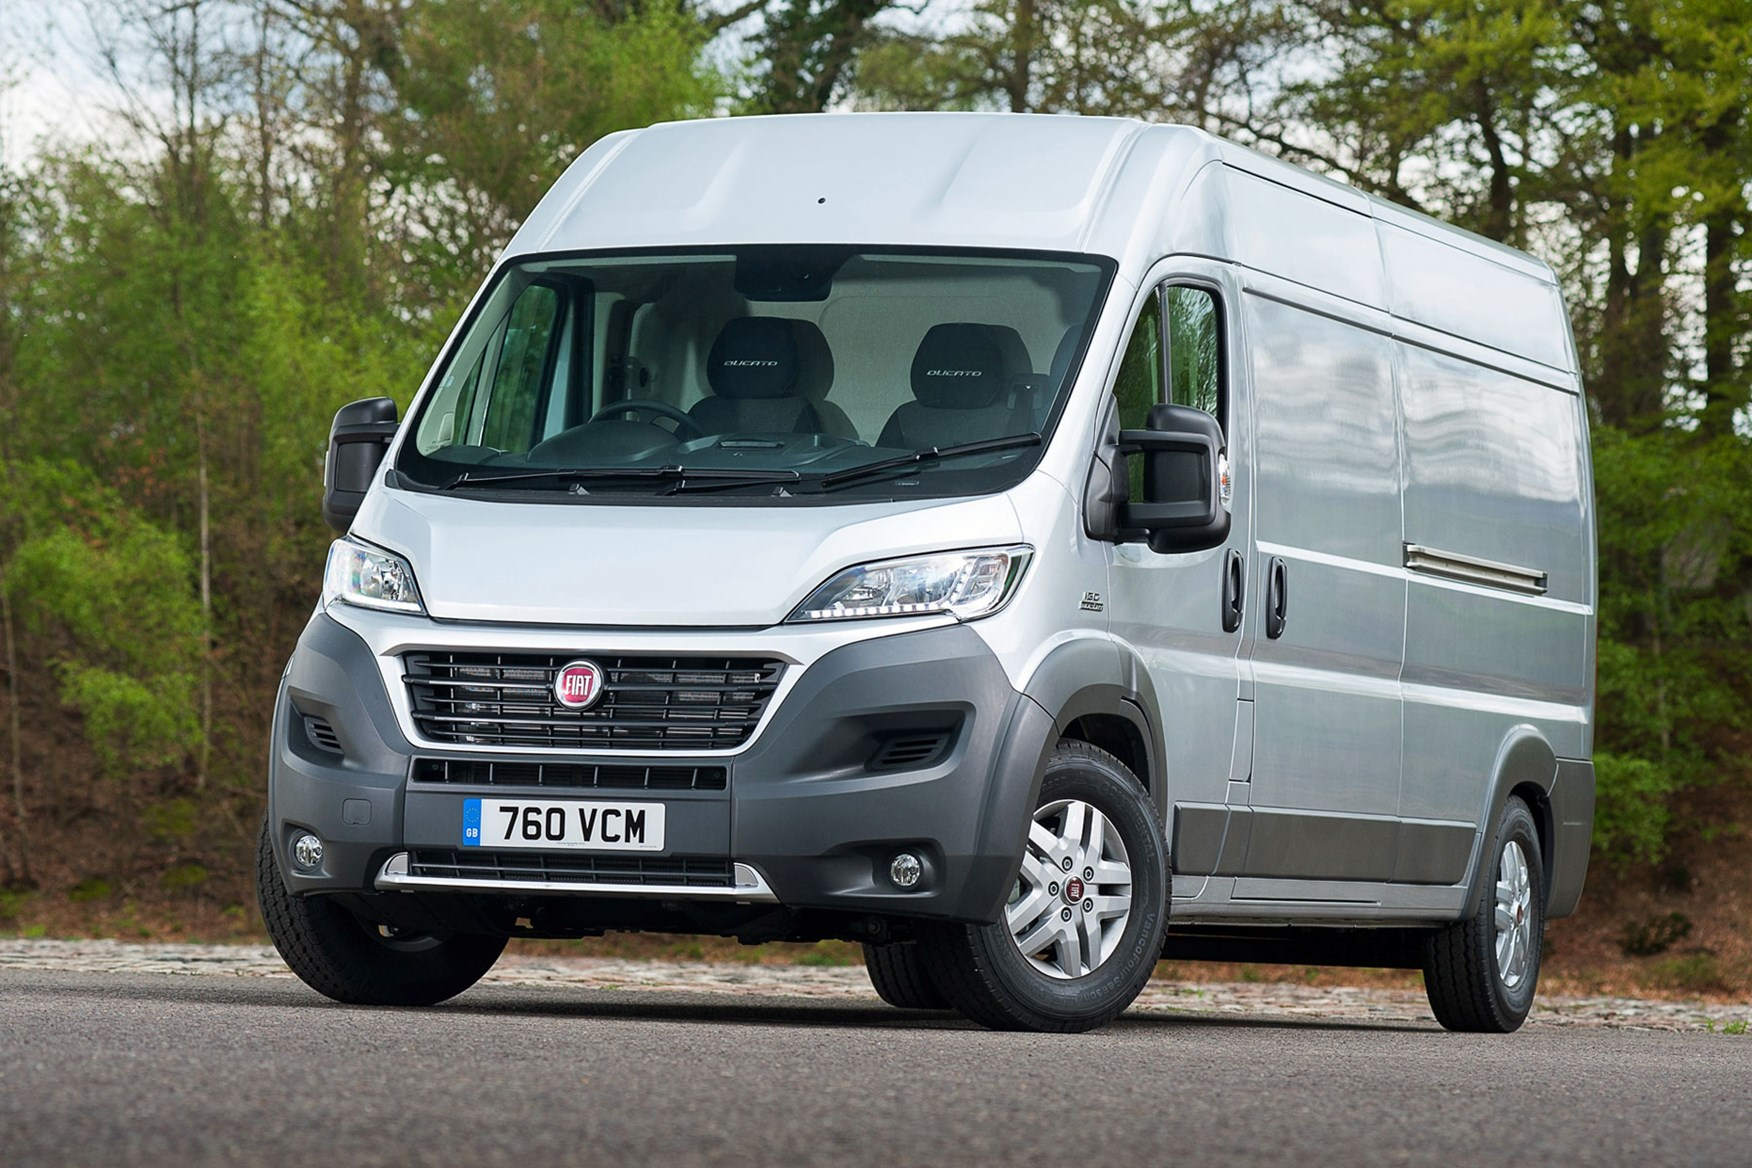 Fiat Ducato review - 2014 facelift, front view, silver